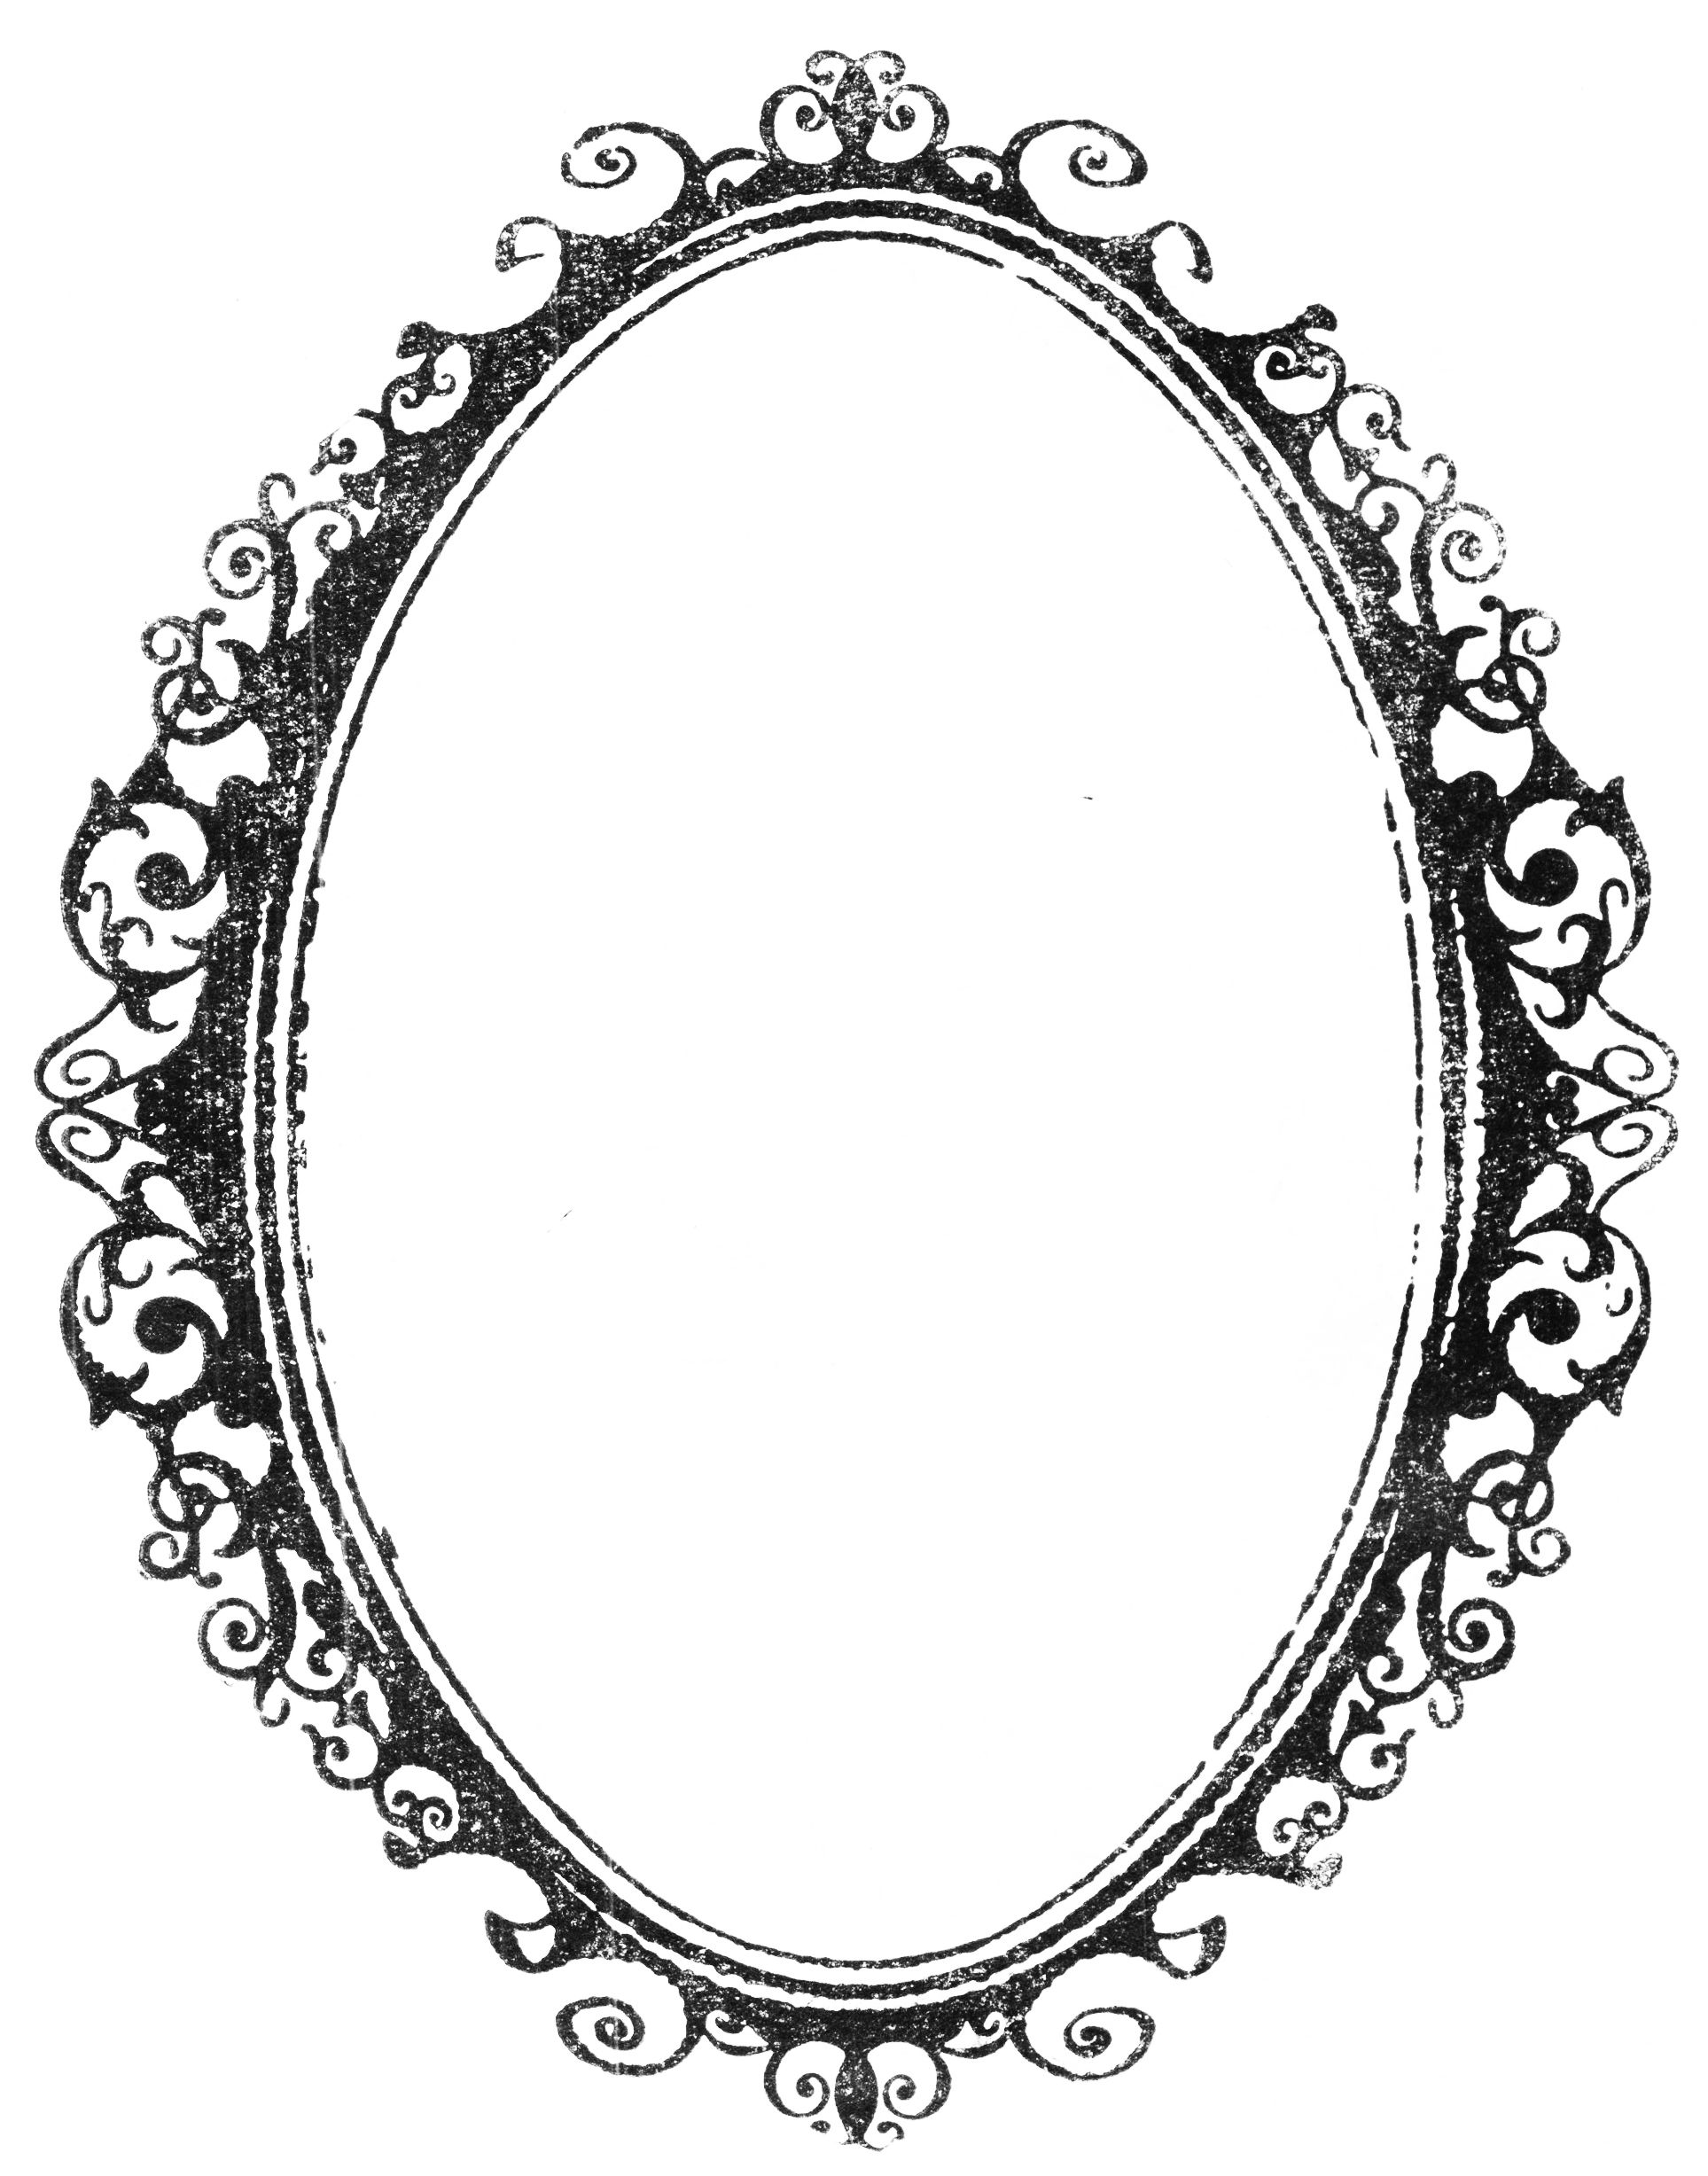 Pin by Mary McCurdy on Reference Images: Frames.